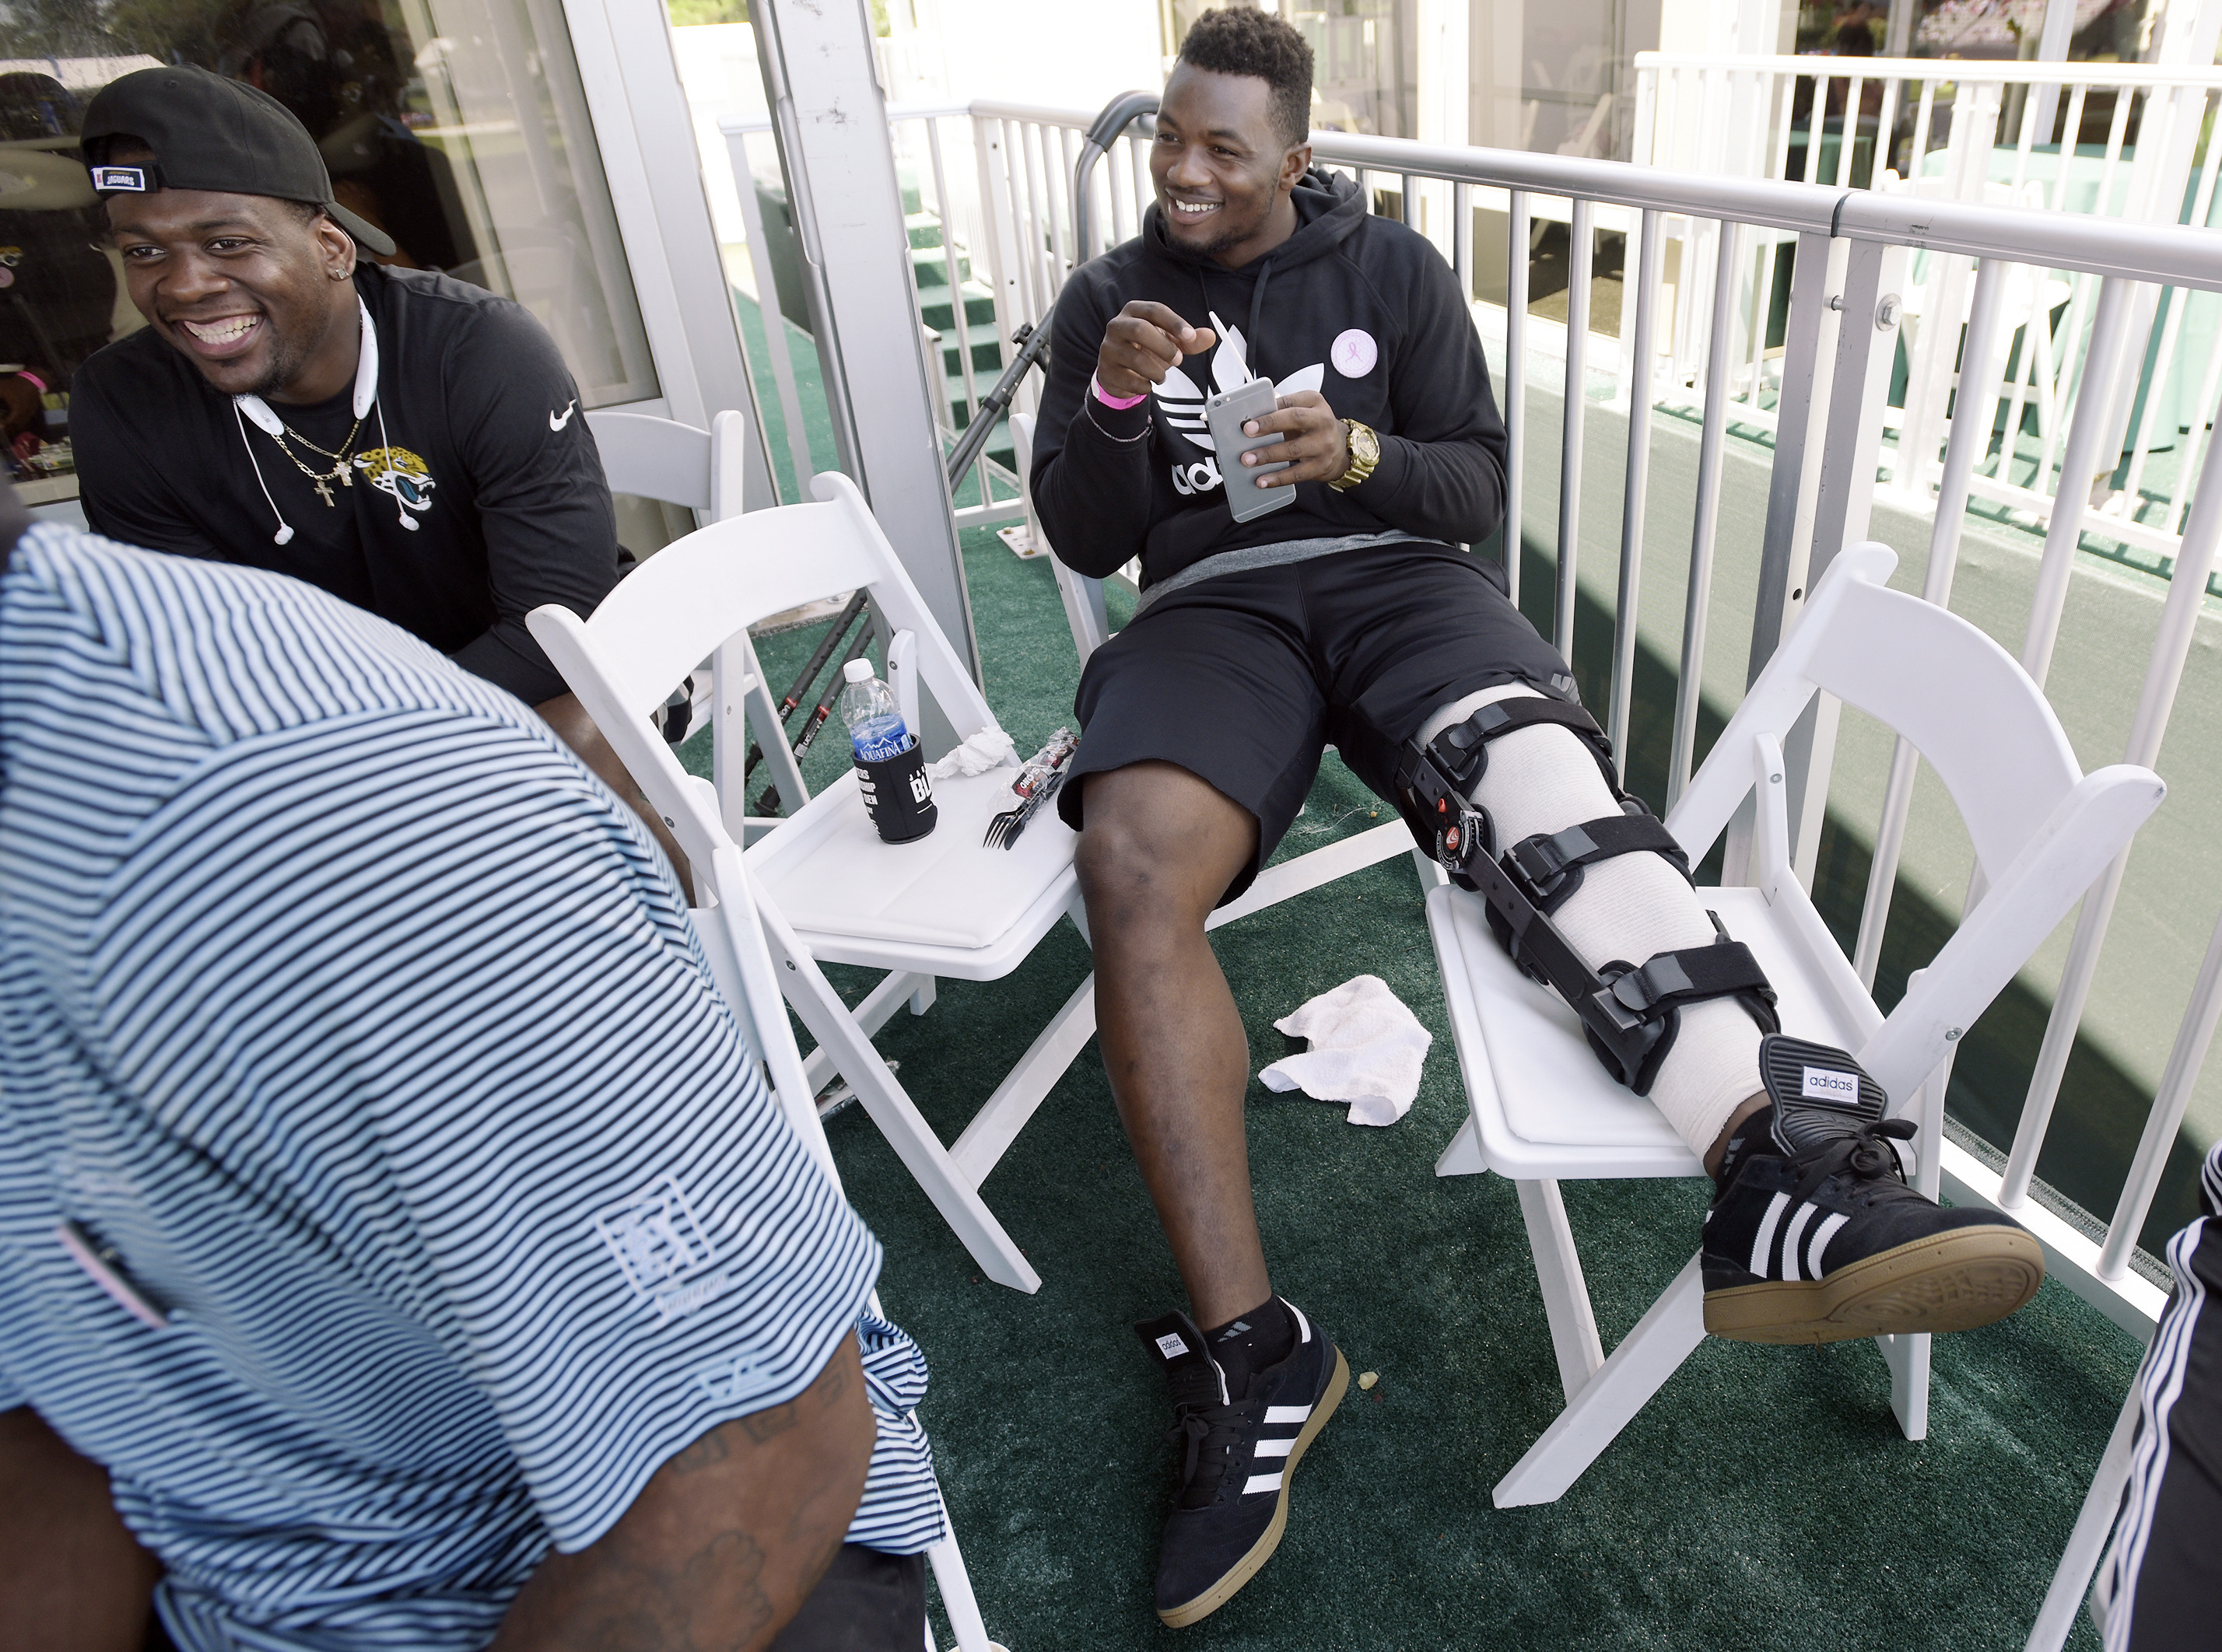 FILE - In this May 10, 2015, file photo, Jacksonville Jaguars first draft pick Dante Fowler Jr. sits with other team rookies in a tent overlooking the 17 green during the final round of The Players Championship golf tournament in Ponte Vedra Beach, Fla. F